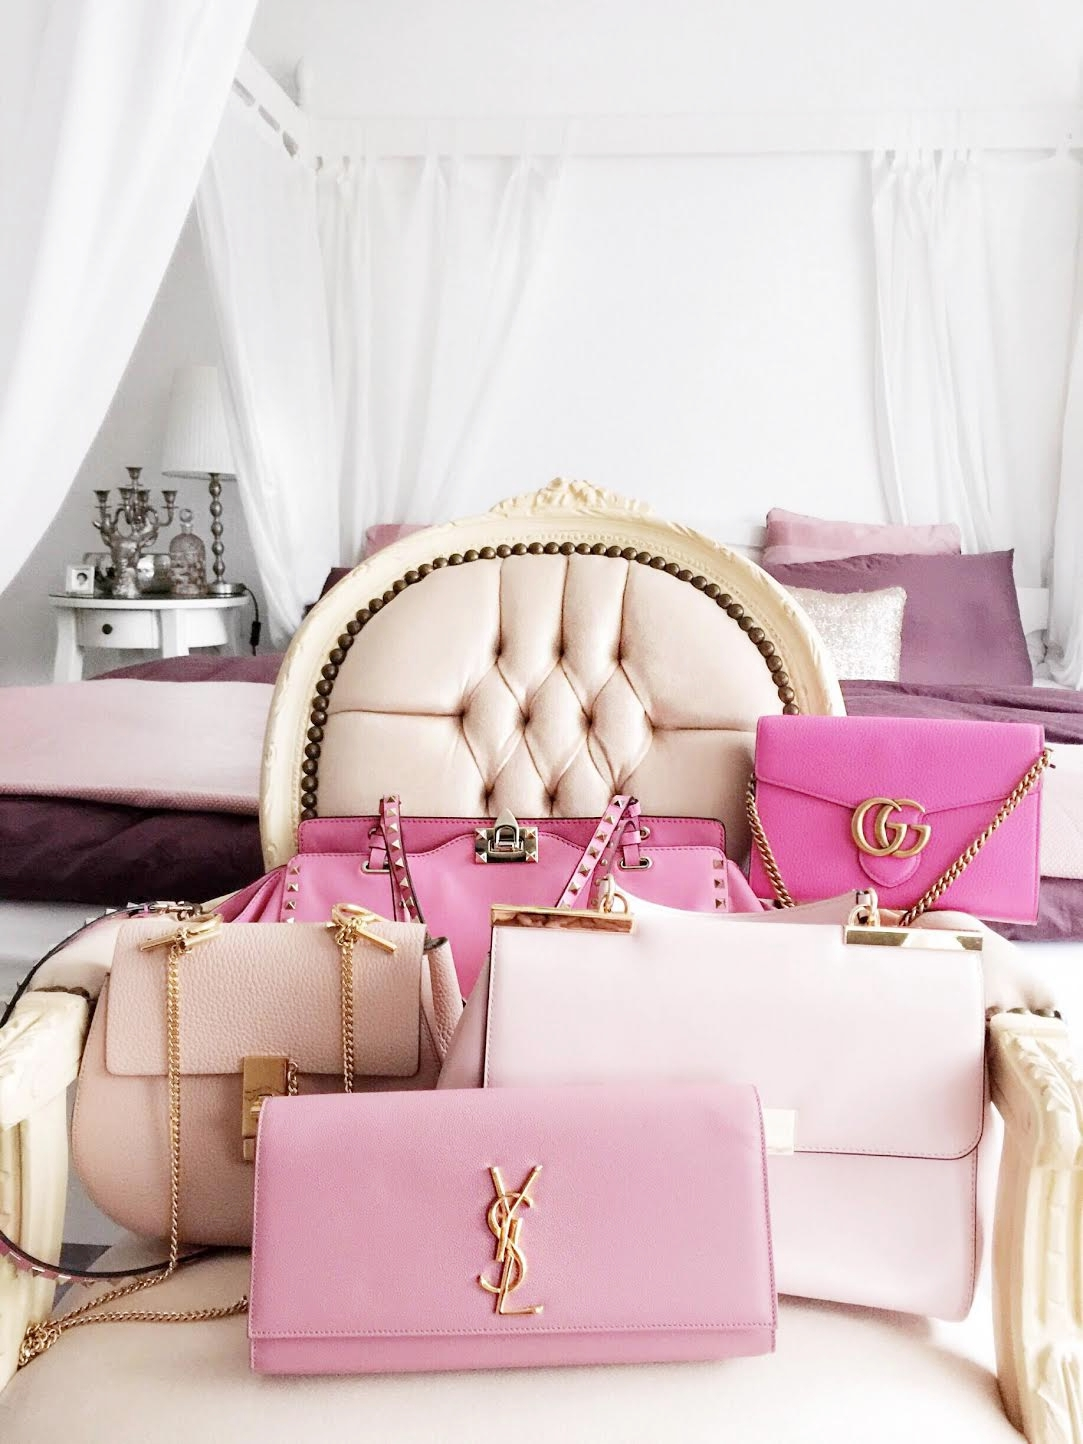 5-pink-bags-designer-worth-the-price